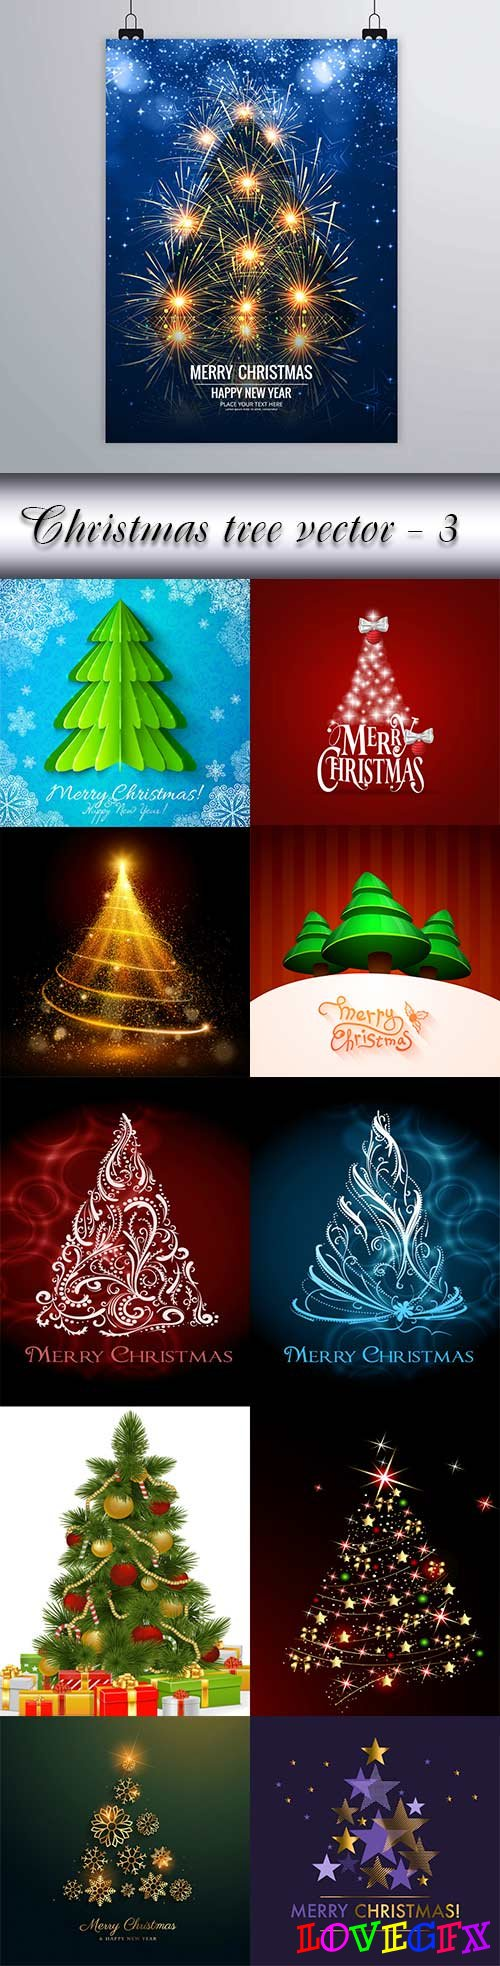 Christmas tree vector - 3